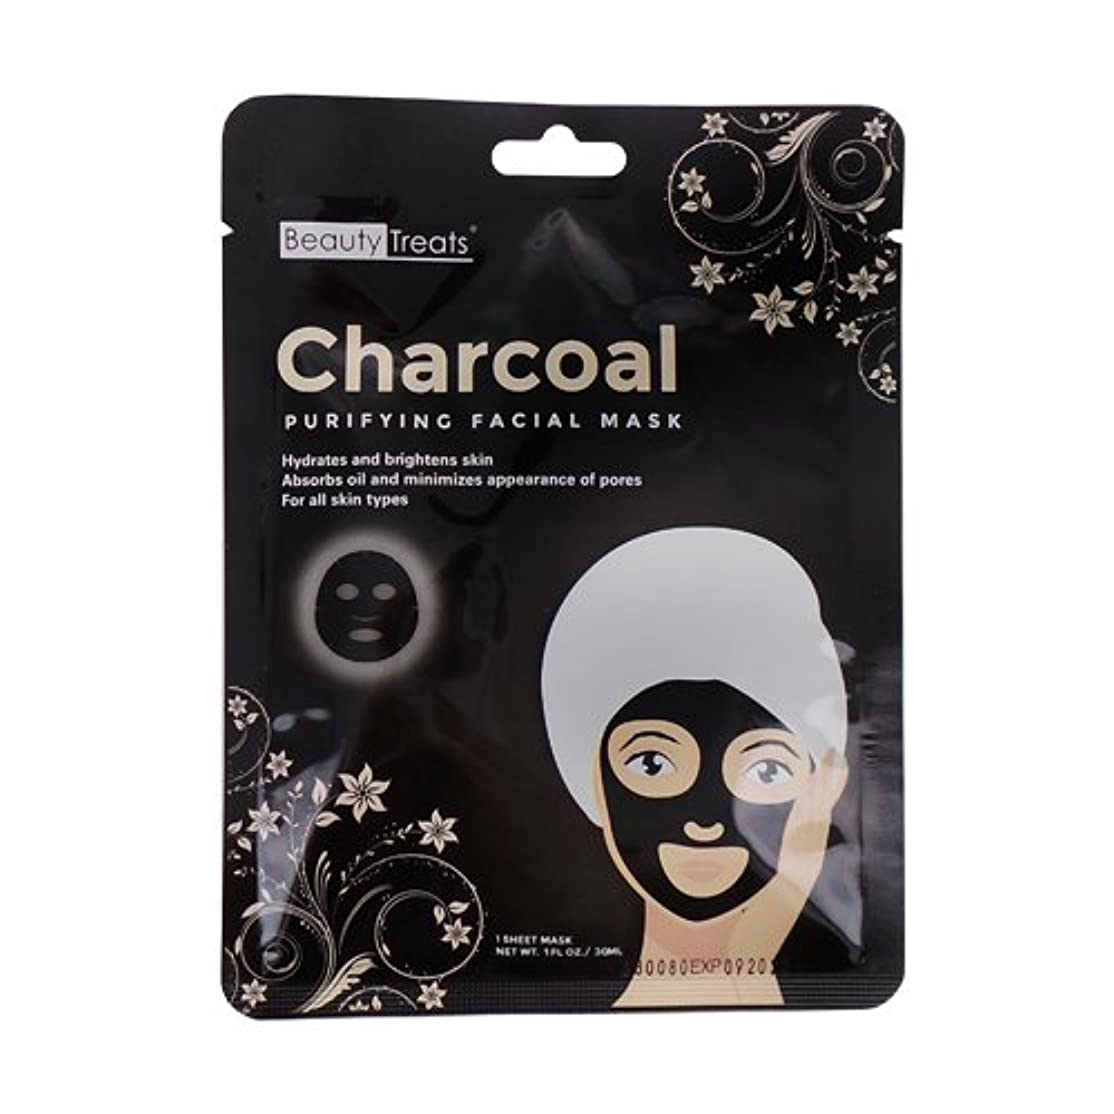 繰り返す保全花火(6 Pack) BEAUTY TREATS Charcoal Purifying Facial Mask (並行輸入品)